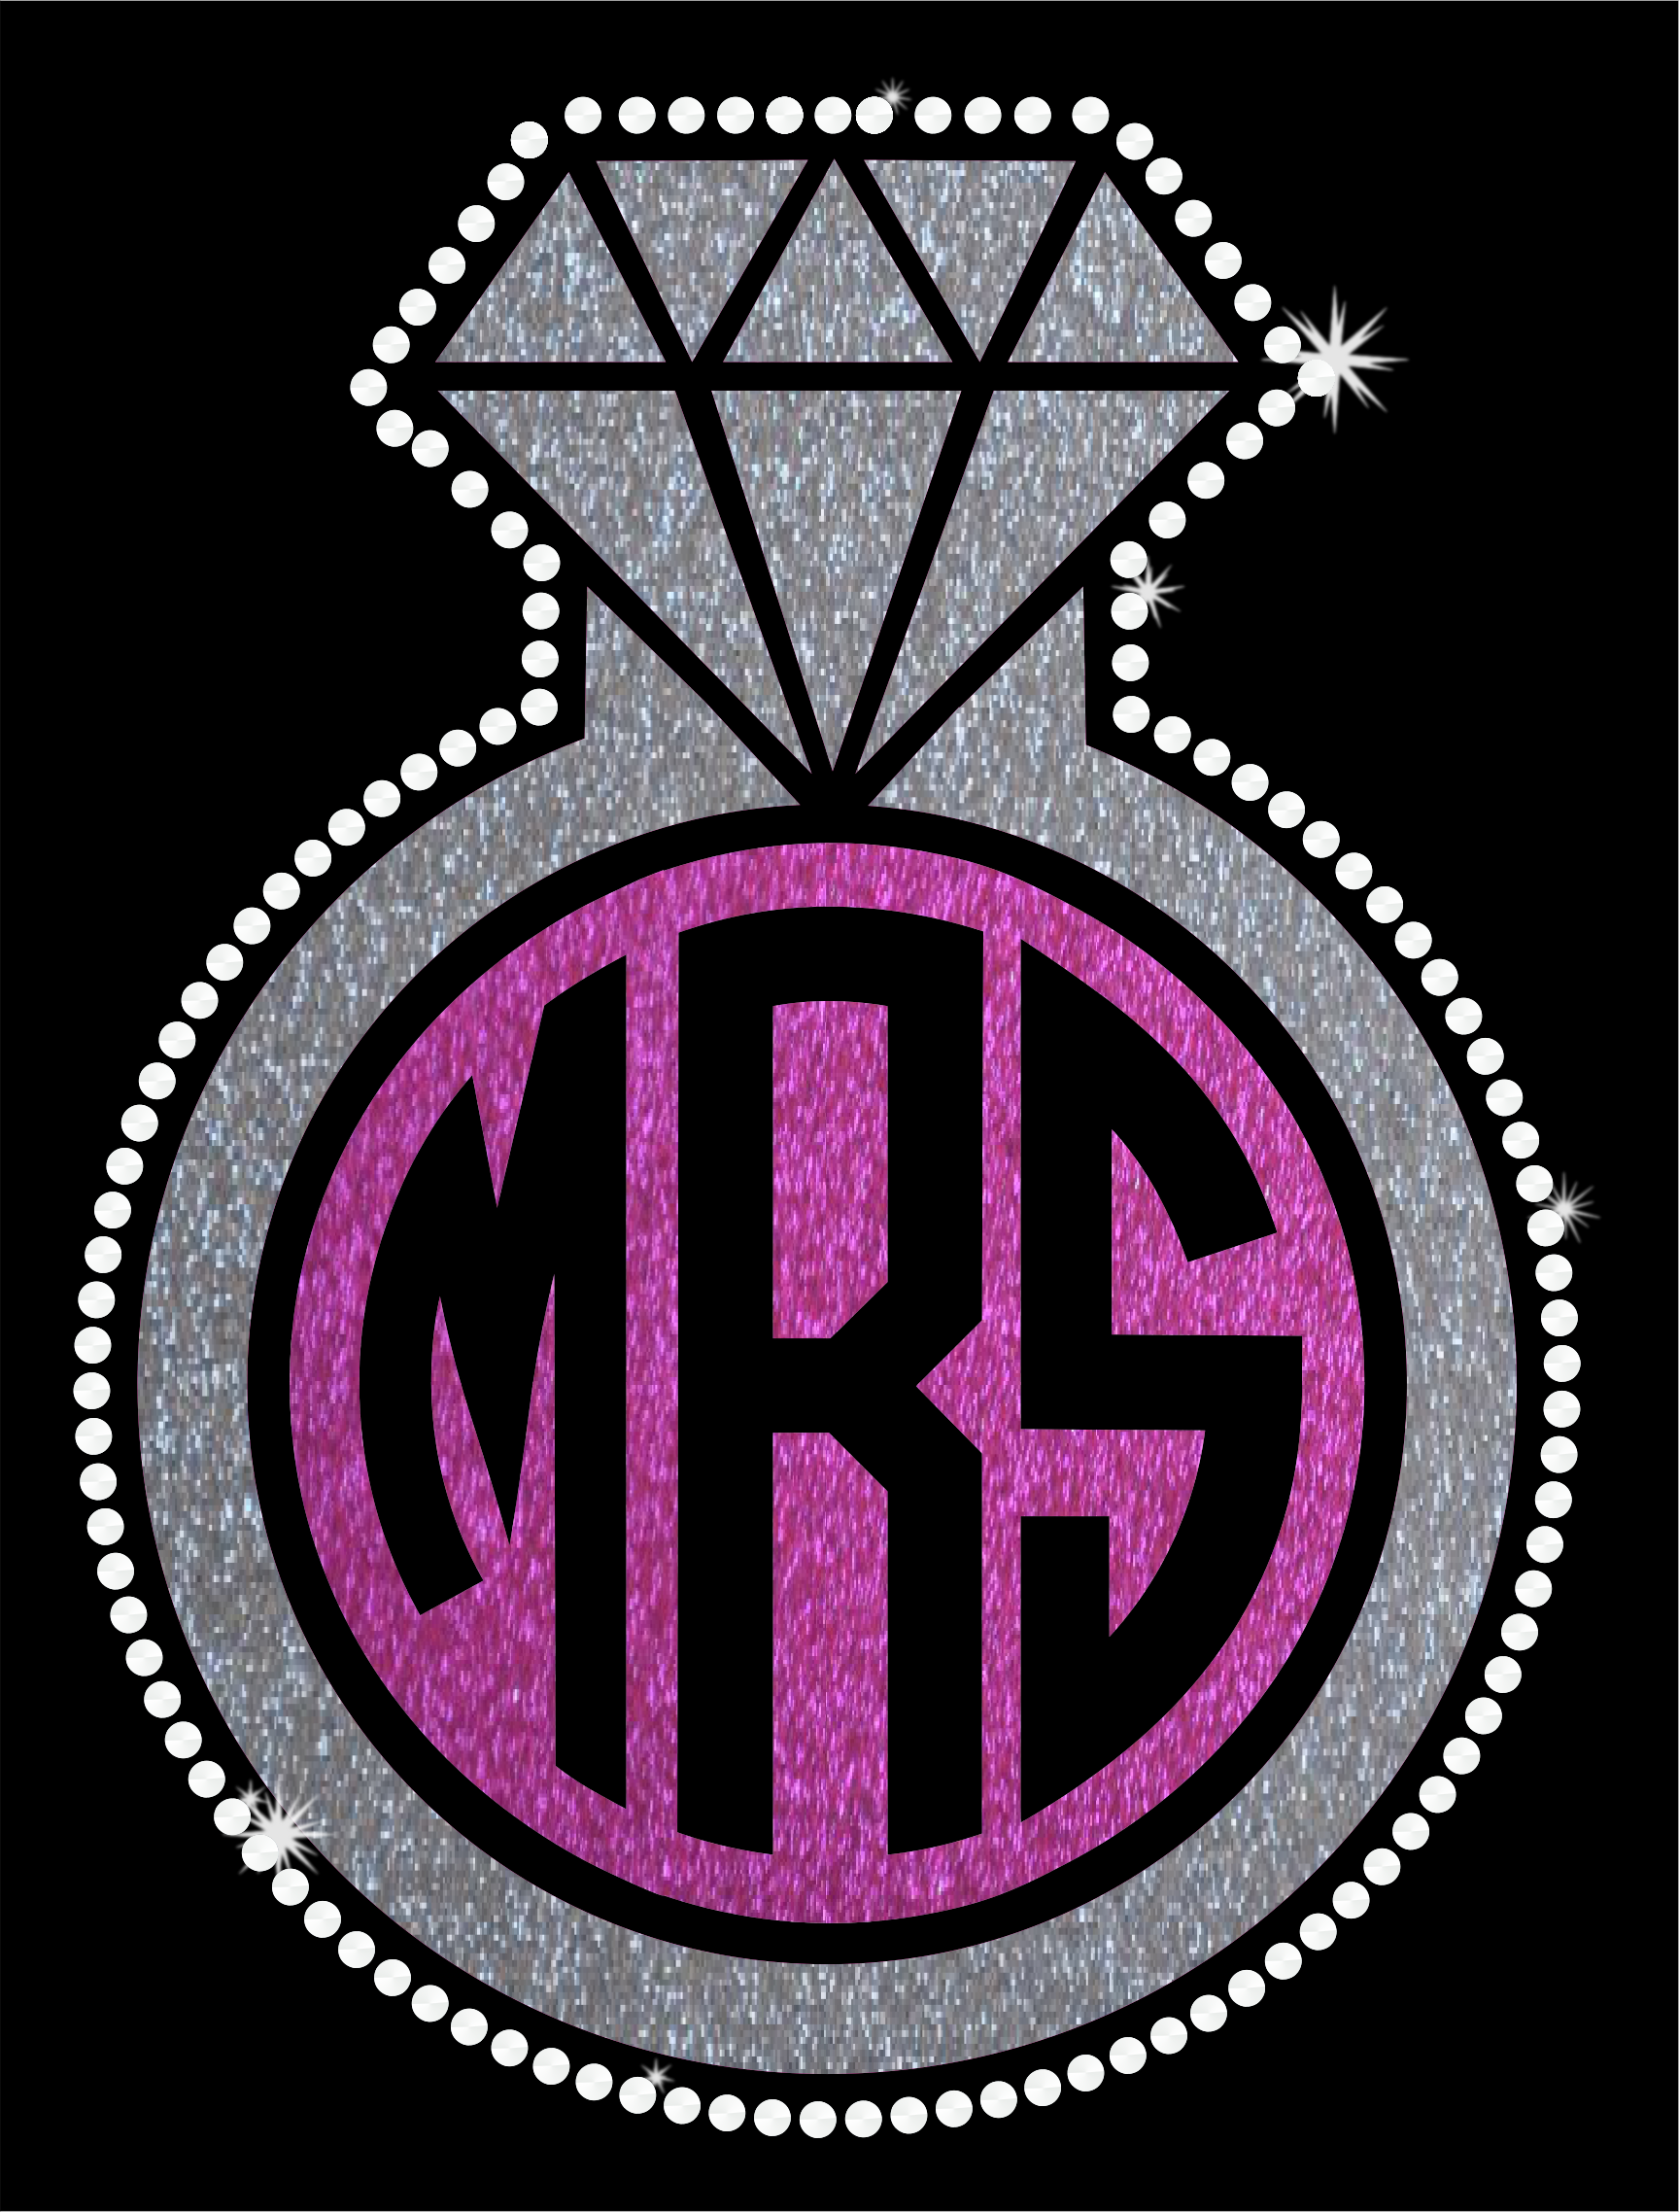 MRS. monogram diamond ring in silver and pink metallic glitter and clear crystal rhinestones.